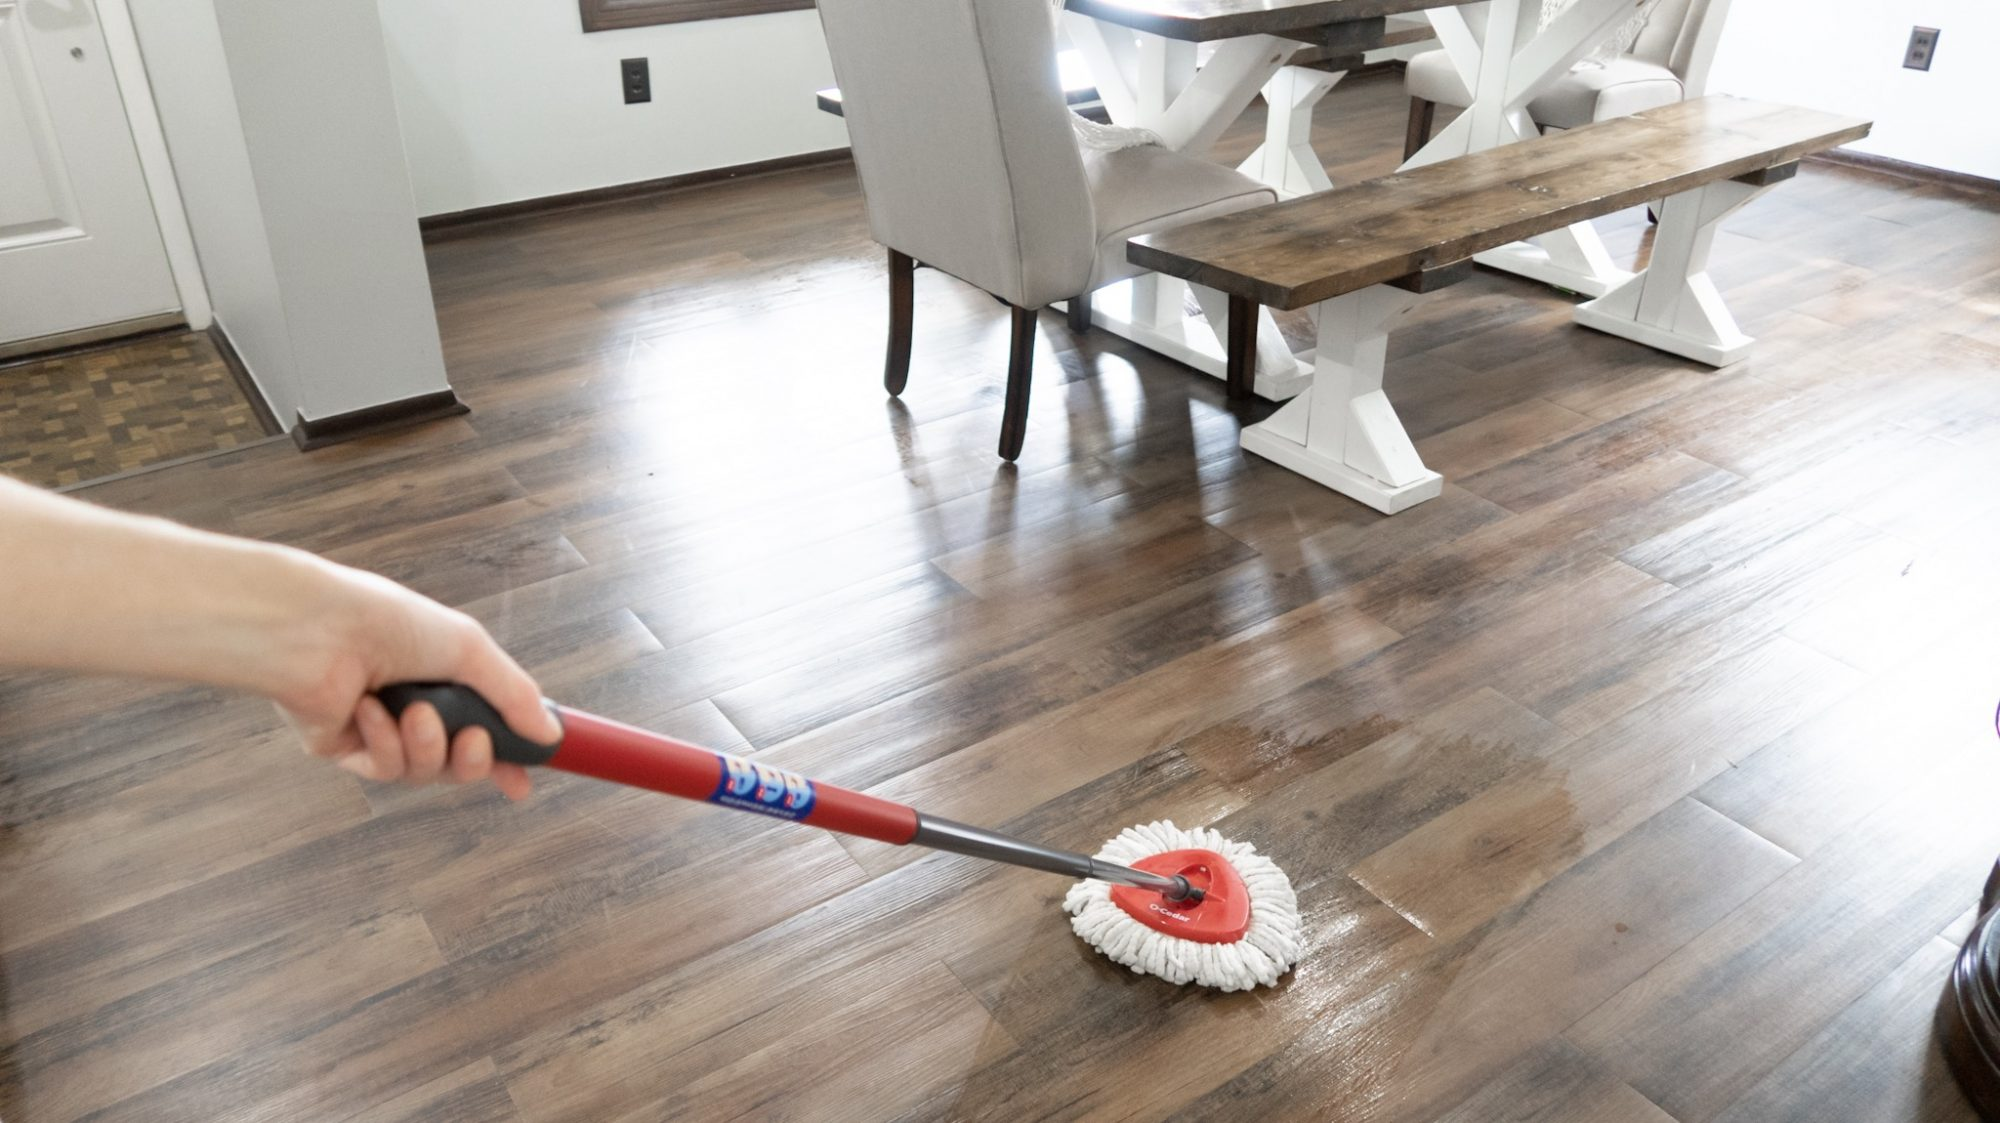 mopping with Homemade Floor Cleaner